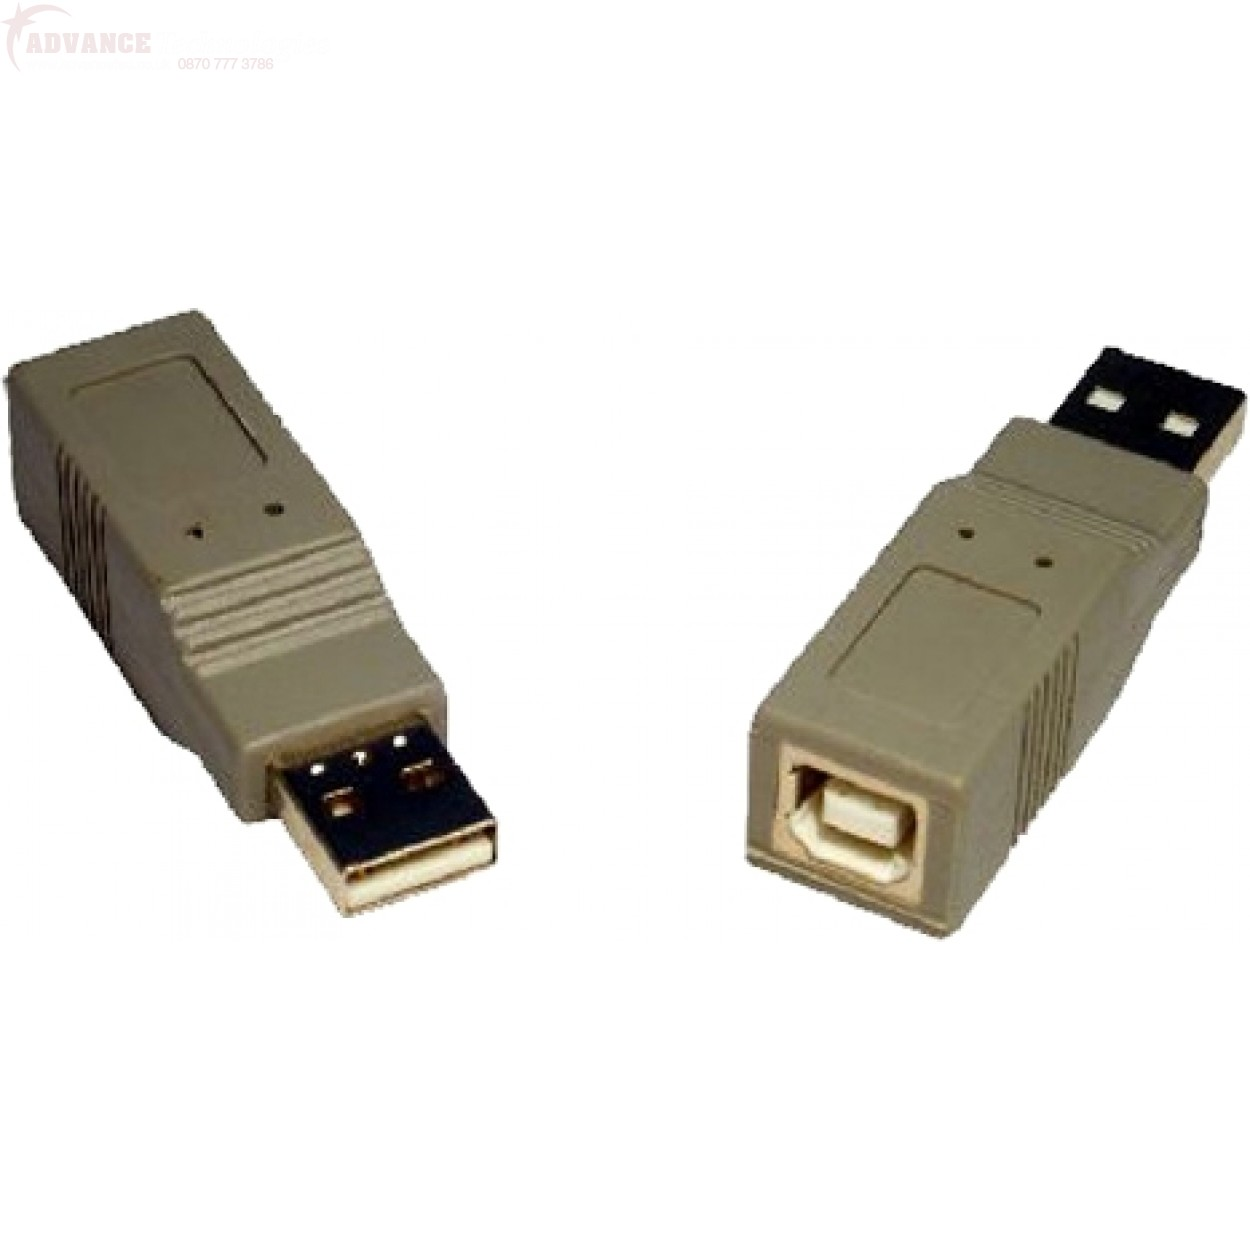 A-USB-ABMF: USB A Male to B Female adapter